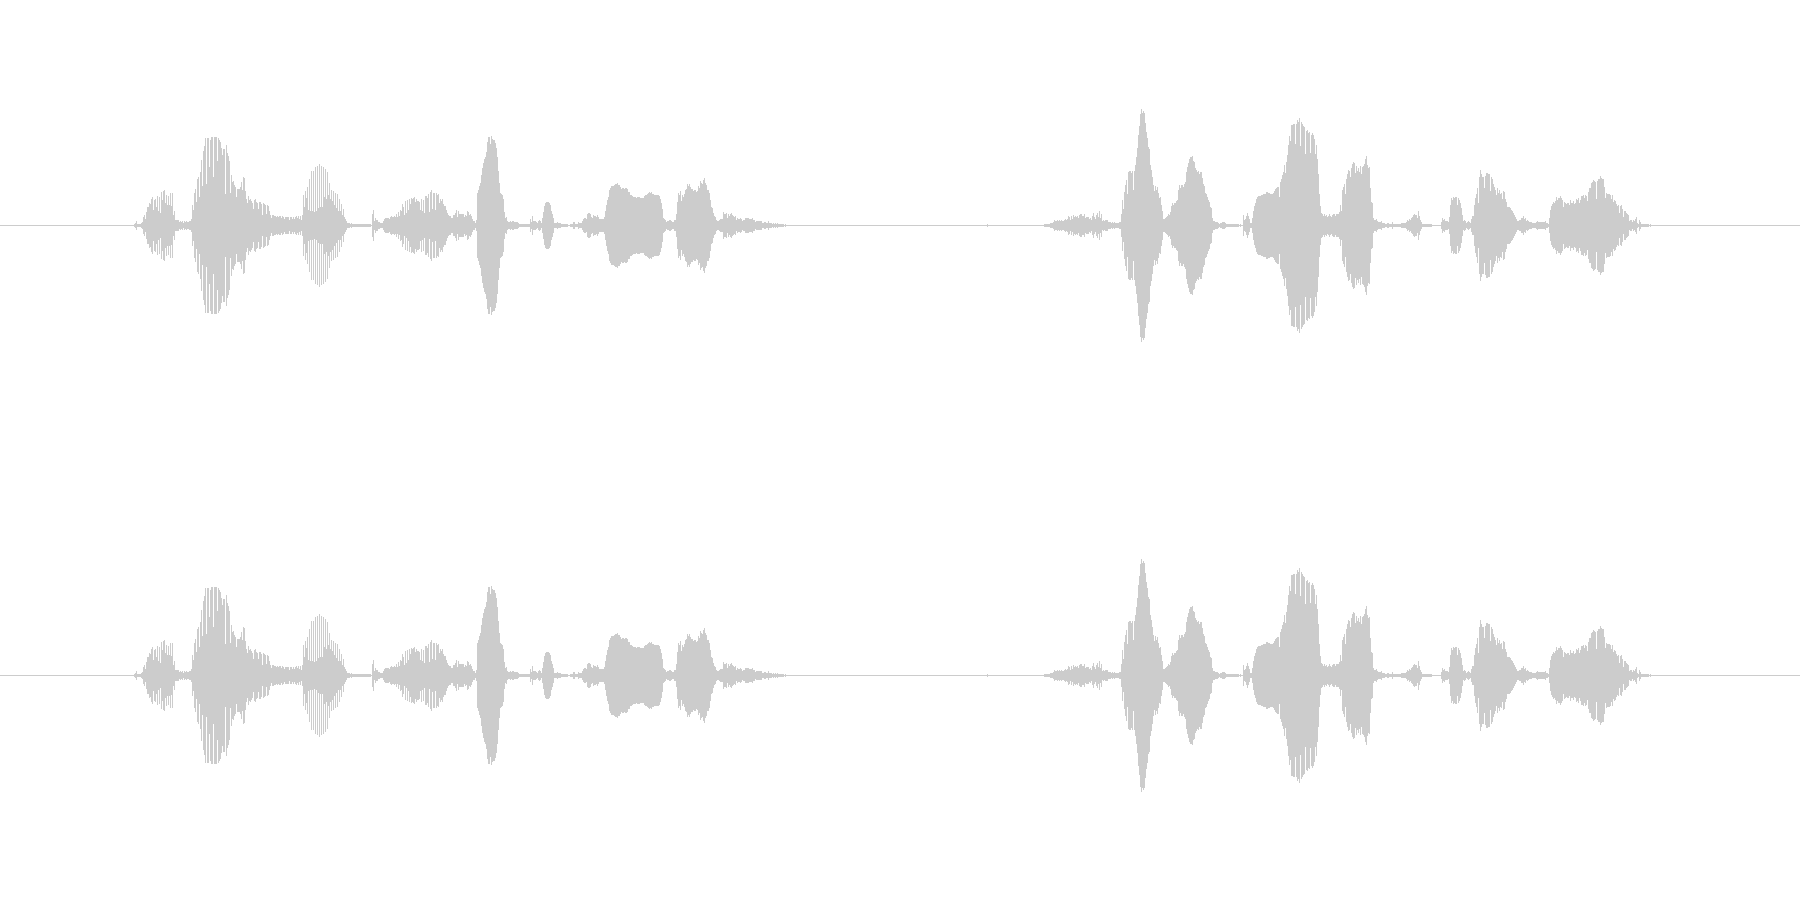 """""""Searching now. Please wait for a while.""""'s unreproduced waveform"""